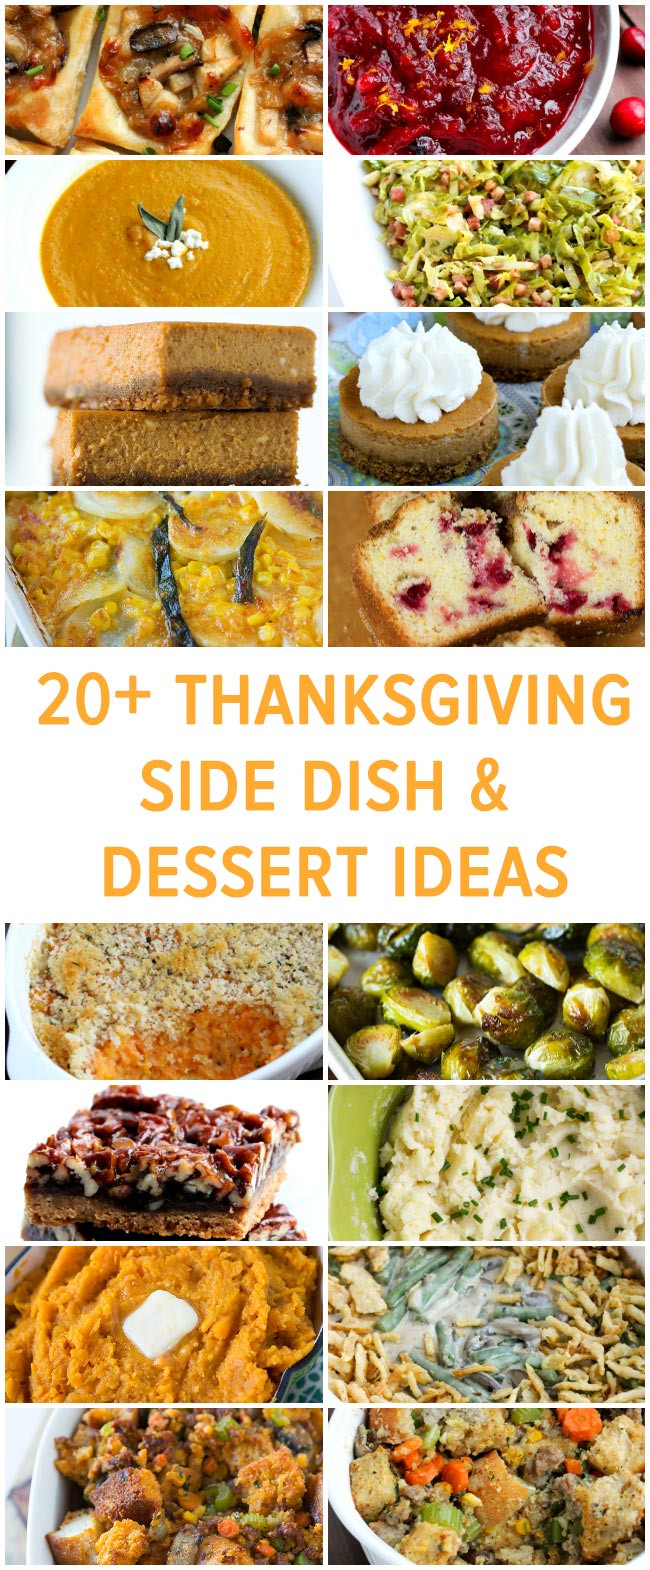 Thanksgiving Side Dishes Ideas  20 Thanksgiving Side Dish and Dessert Ideas Table for Two